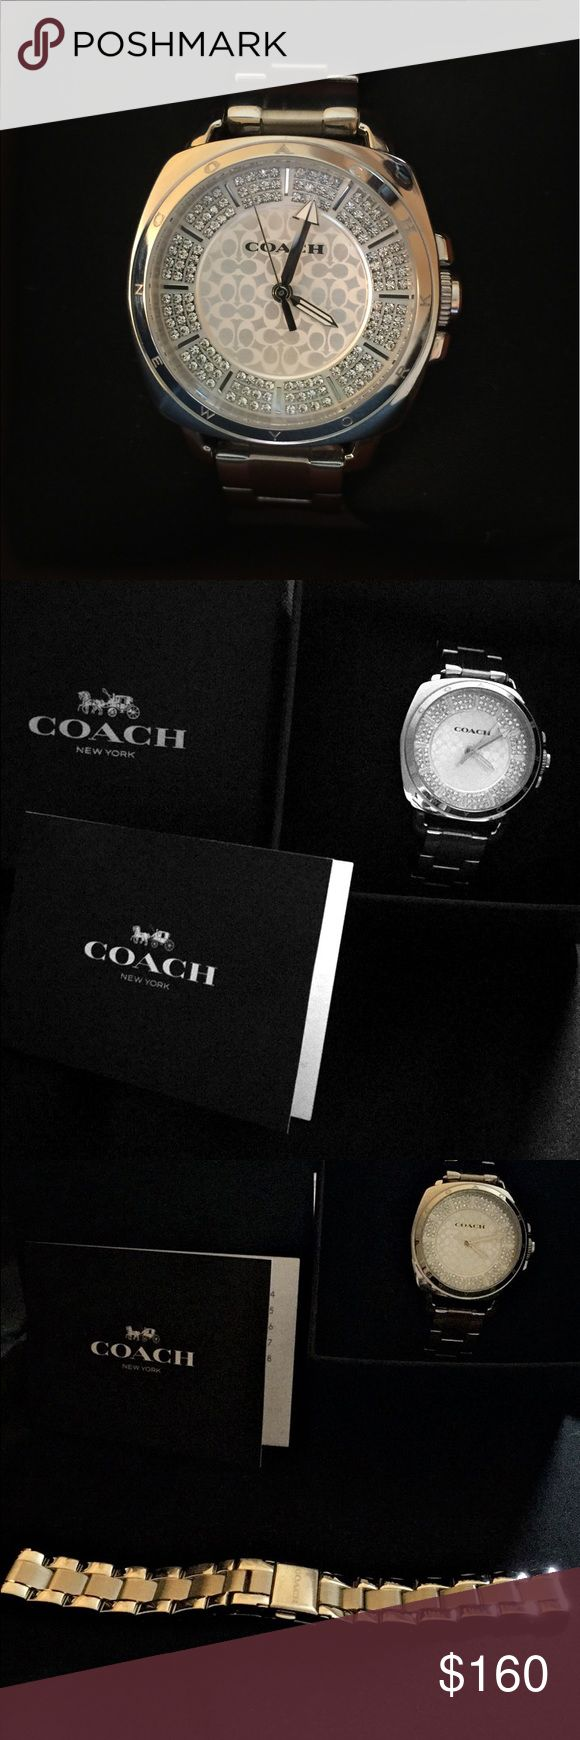 """Women's Coach Boyfriend watch Women's mid-sized Coach Boyfriend watch (34 mm case) - stainless steel case and link bracelet, silver and white dial with Swarovski Crystal set and Coach """"signature C"""" pattern, quartz movement.  Extra stainless steel link bracelet included ($120 retail value). Coach Accessories Watches"""